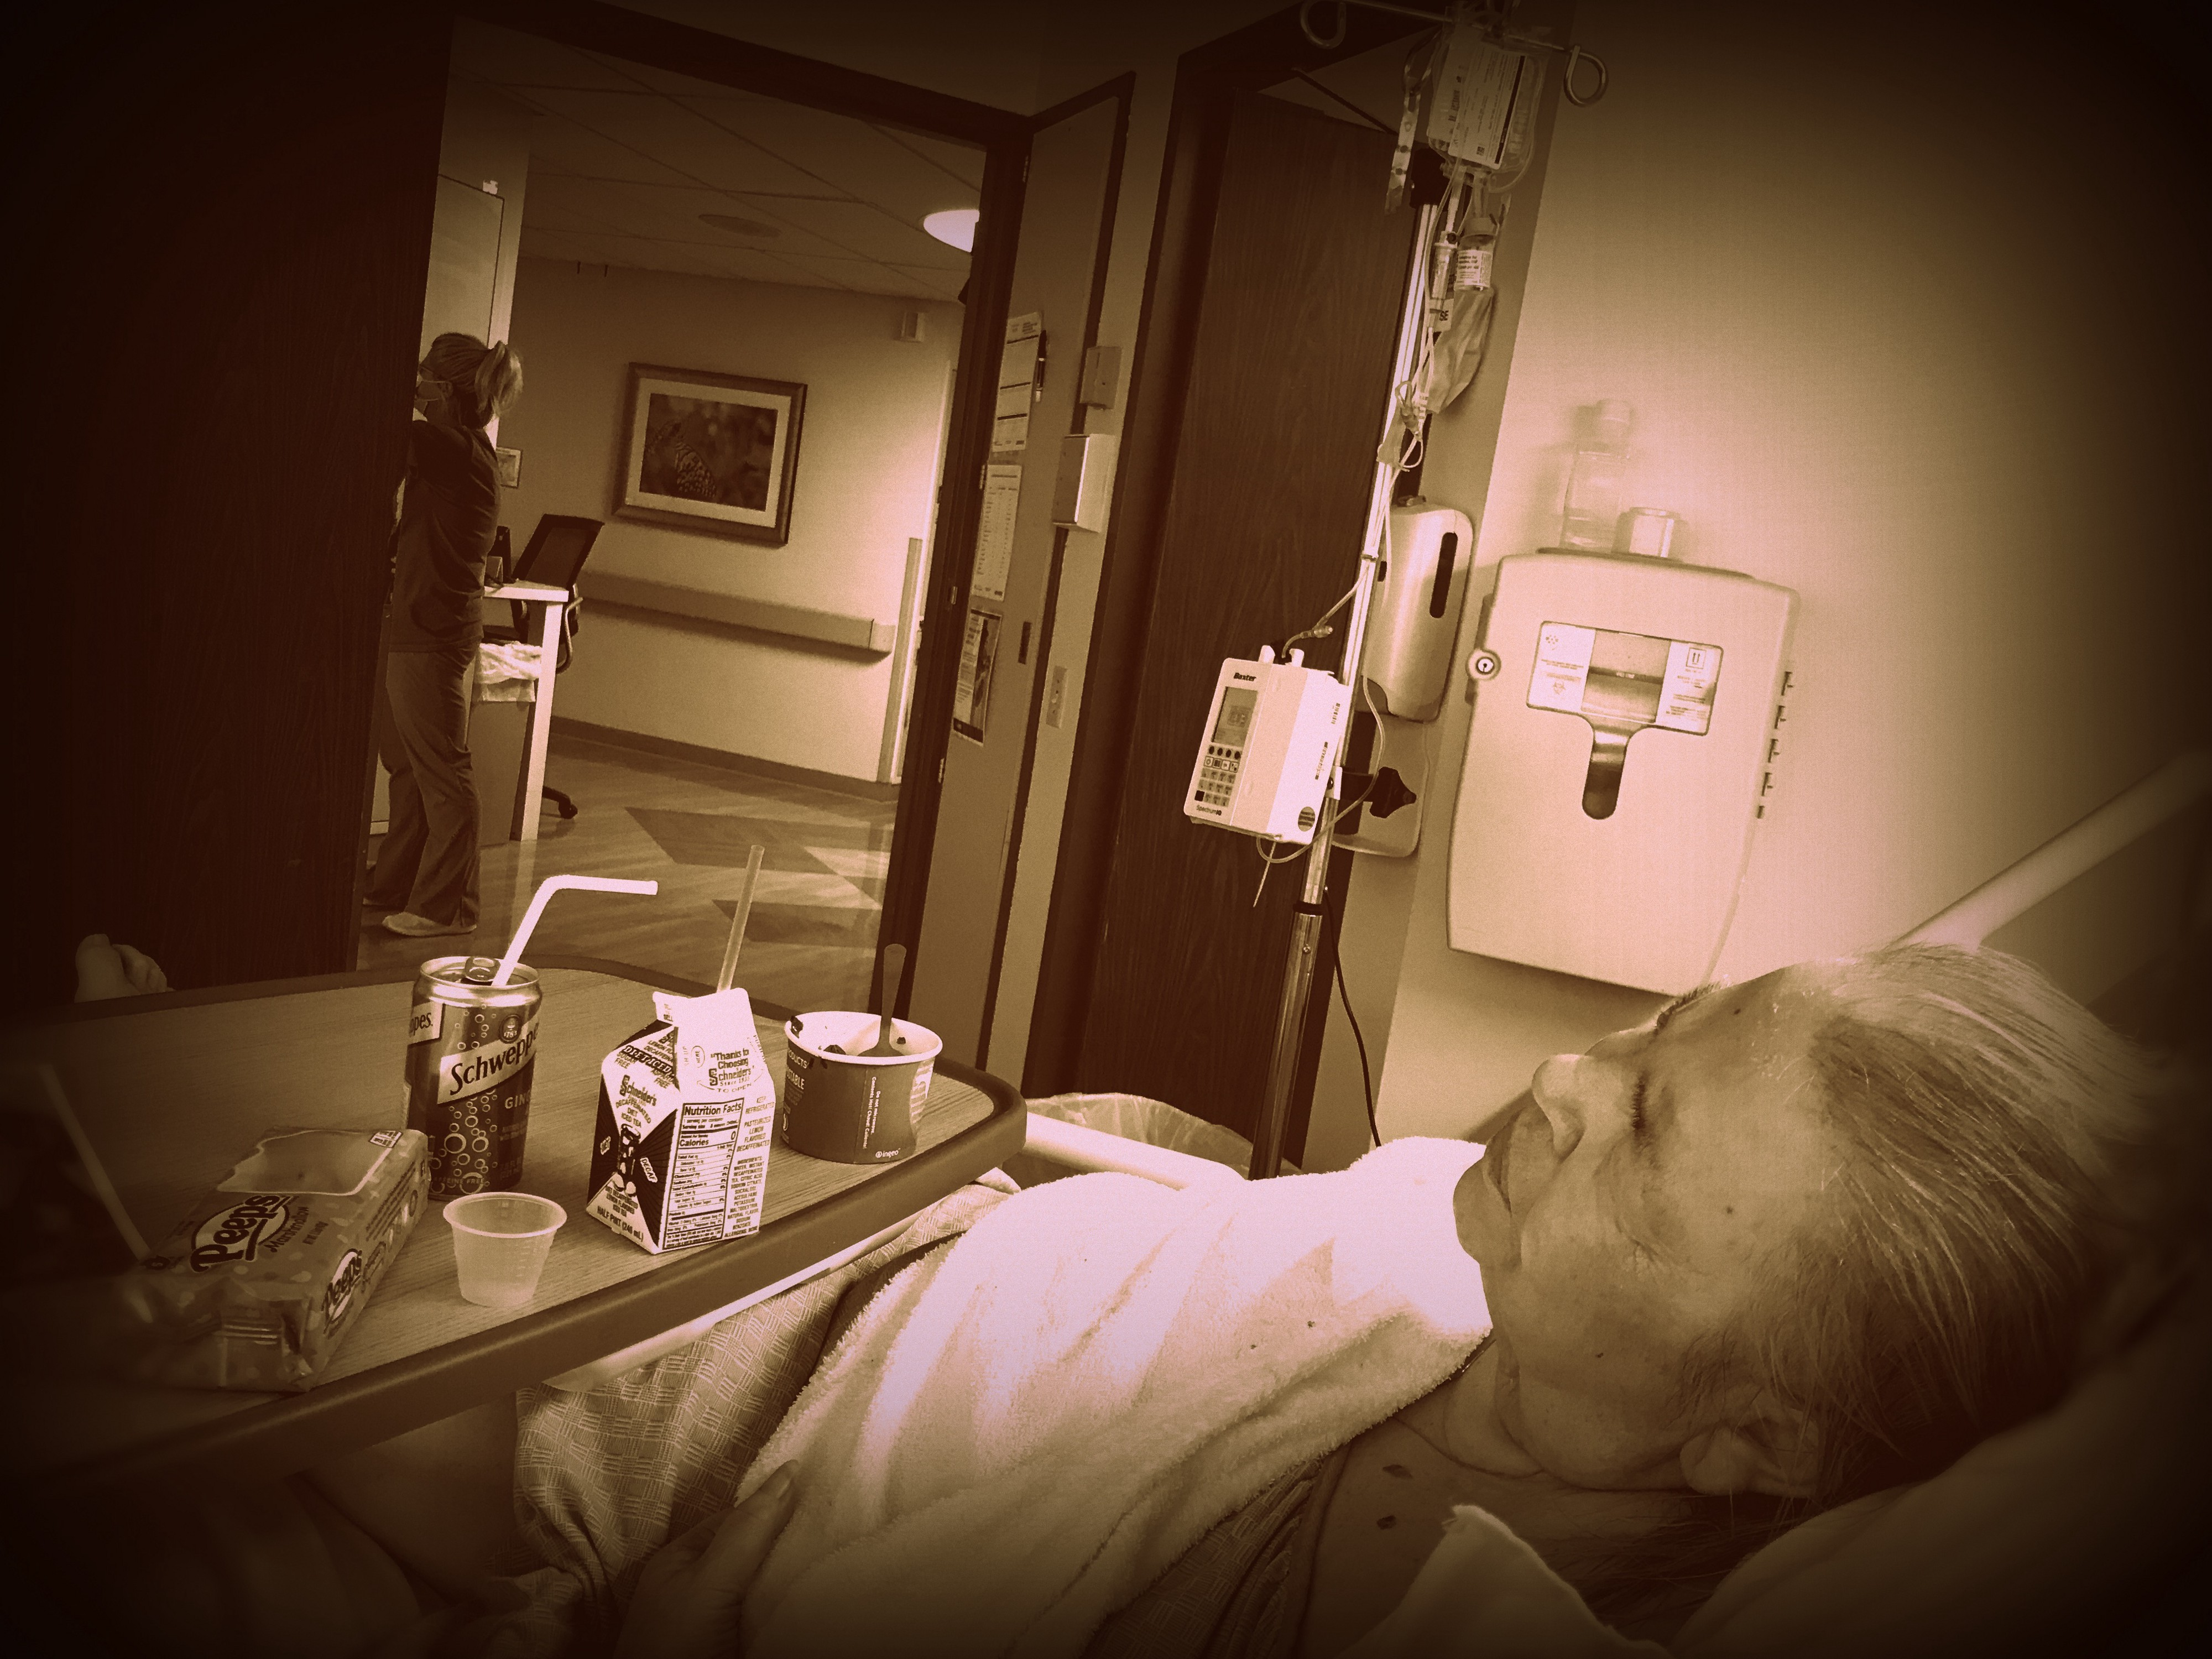 Monochrome photograph of a person laying in a hospital bed a nurse is working in the background